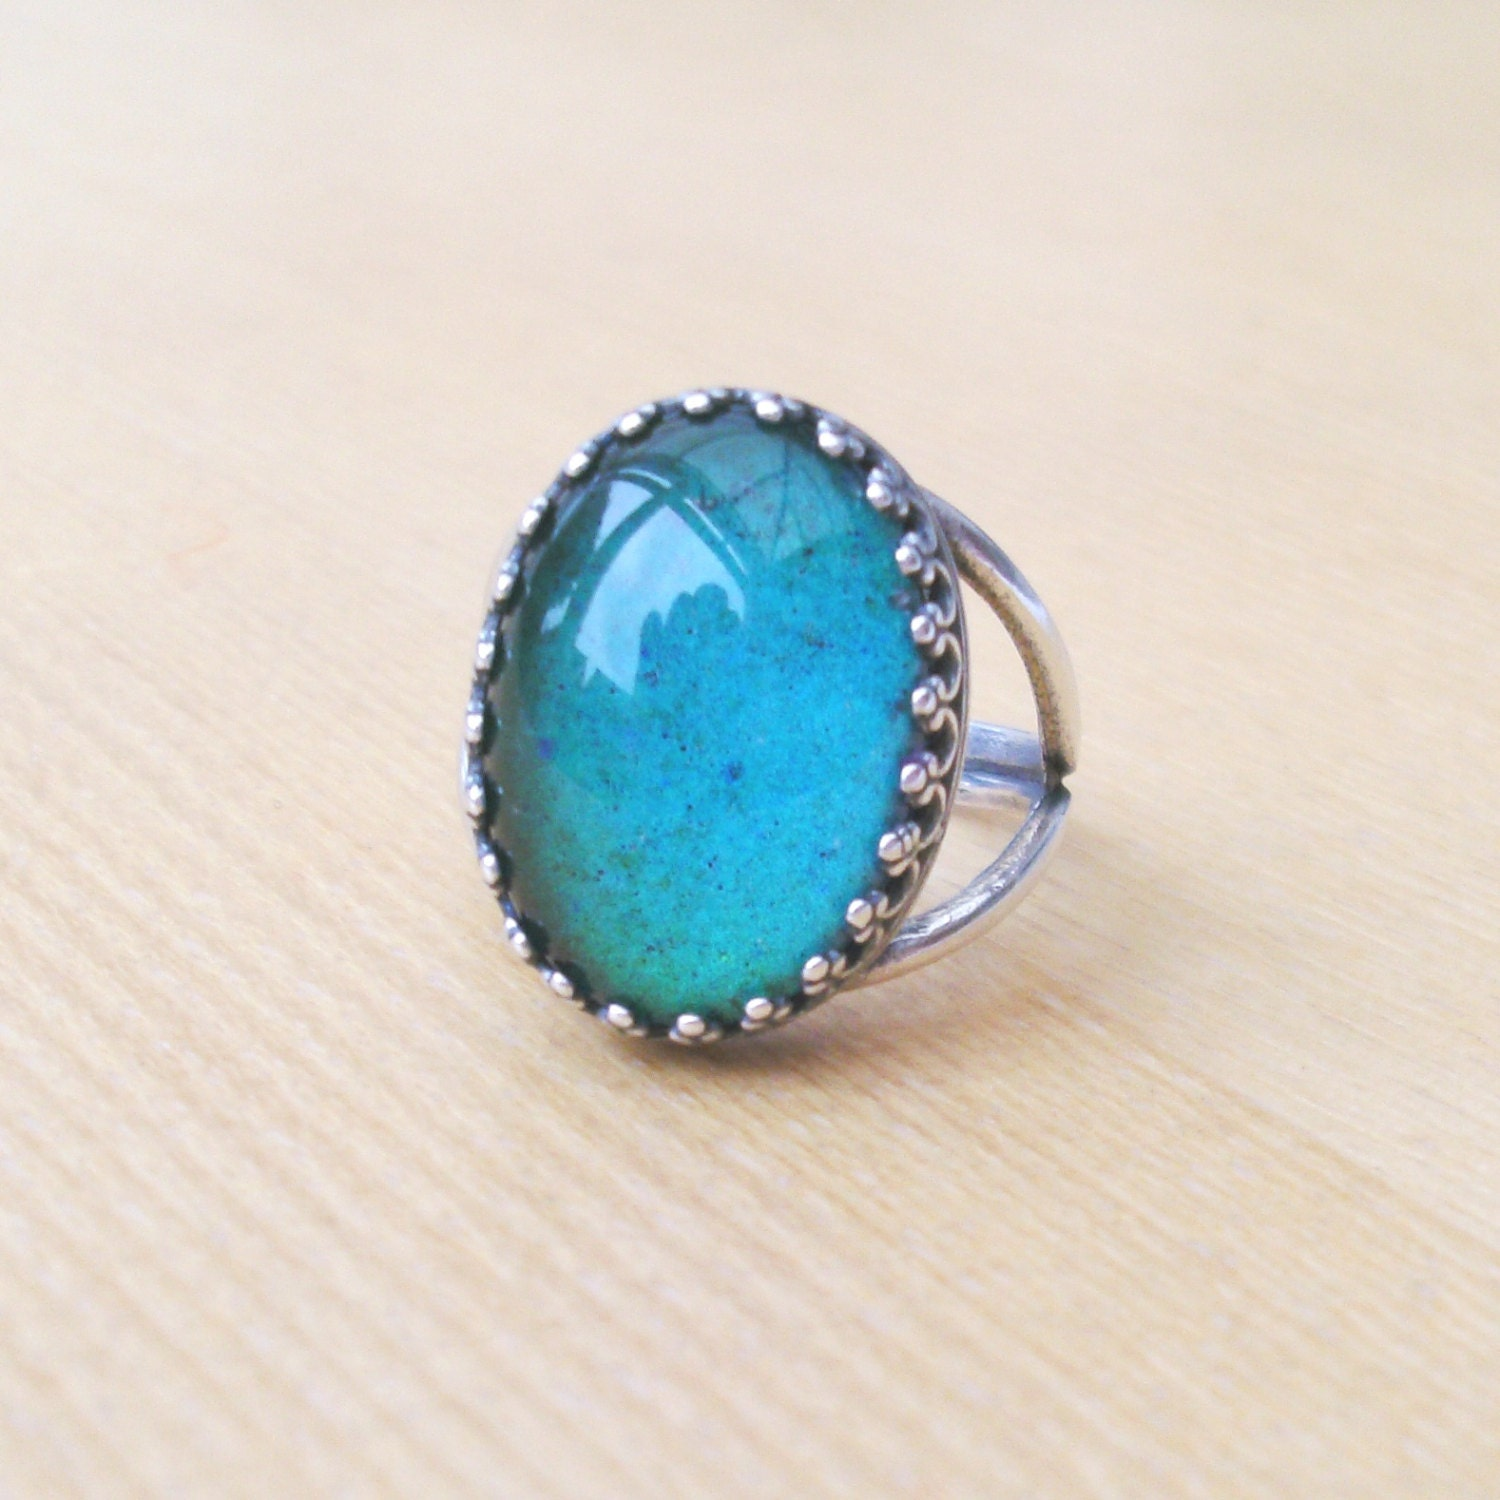 sterling silver mood ring vintage glass mood ring